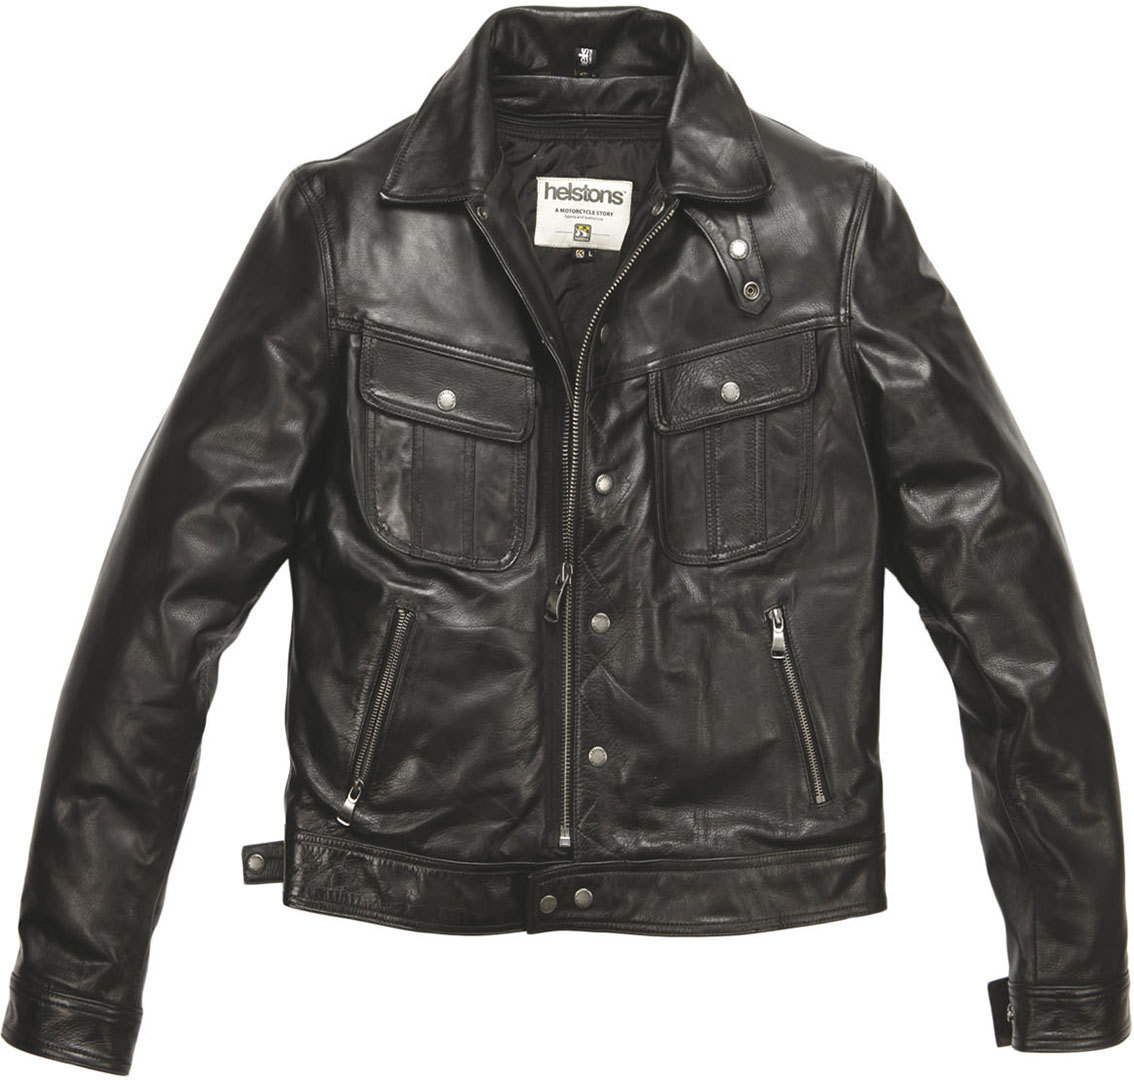 helstons-cannonball-rag-leather-jacket-black-l